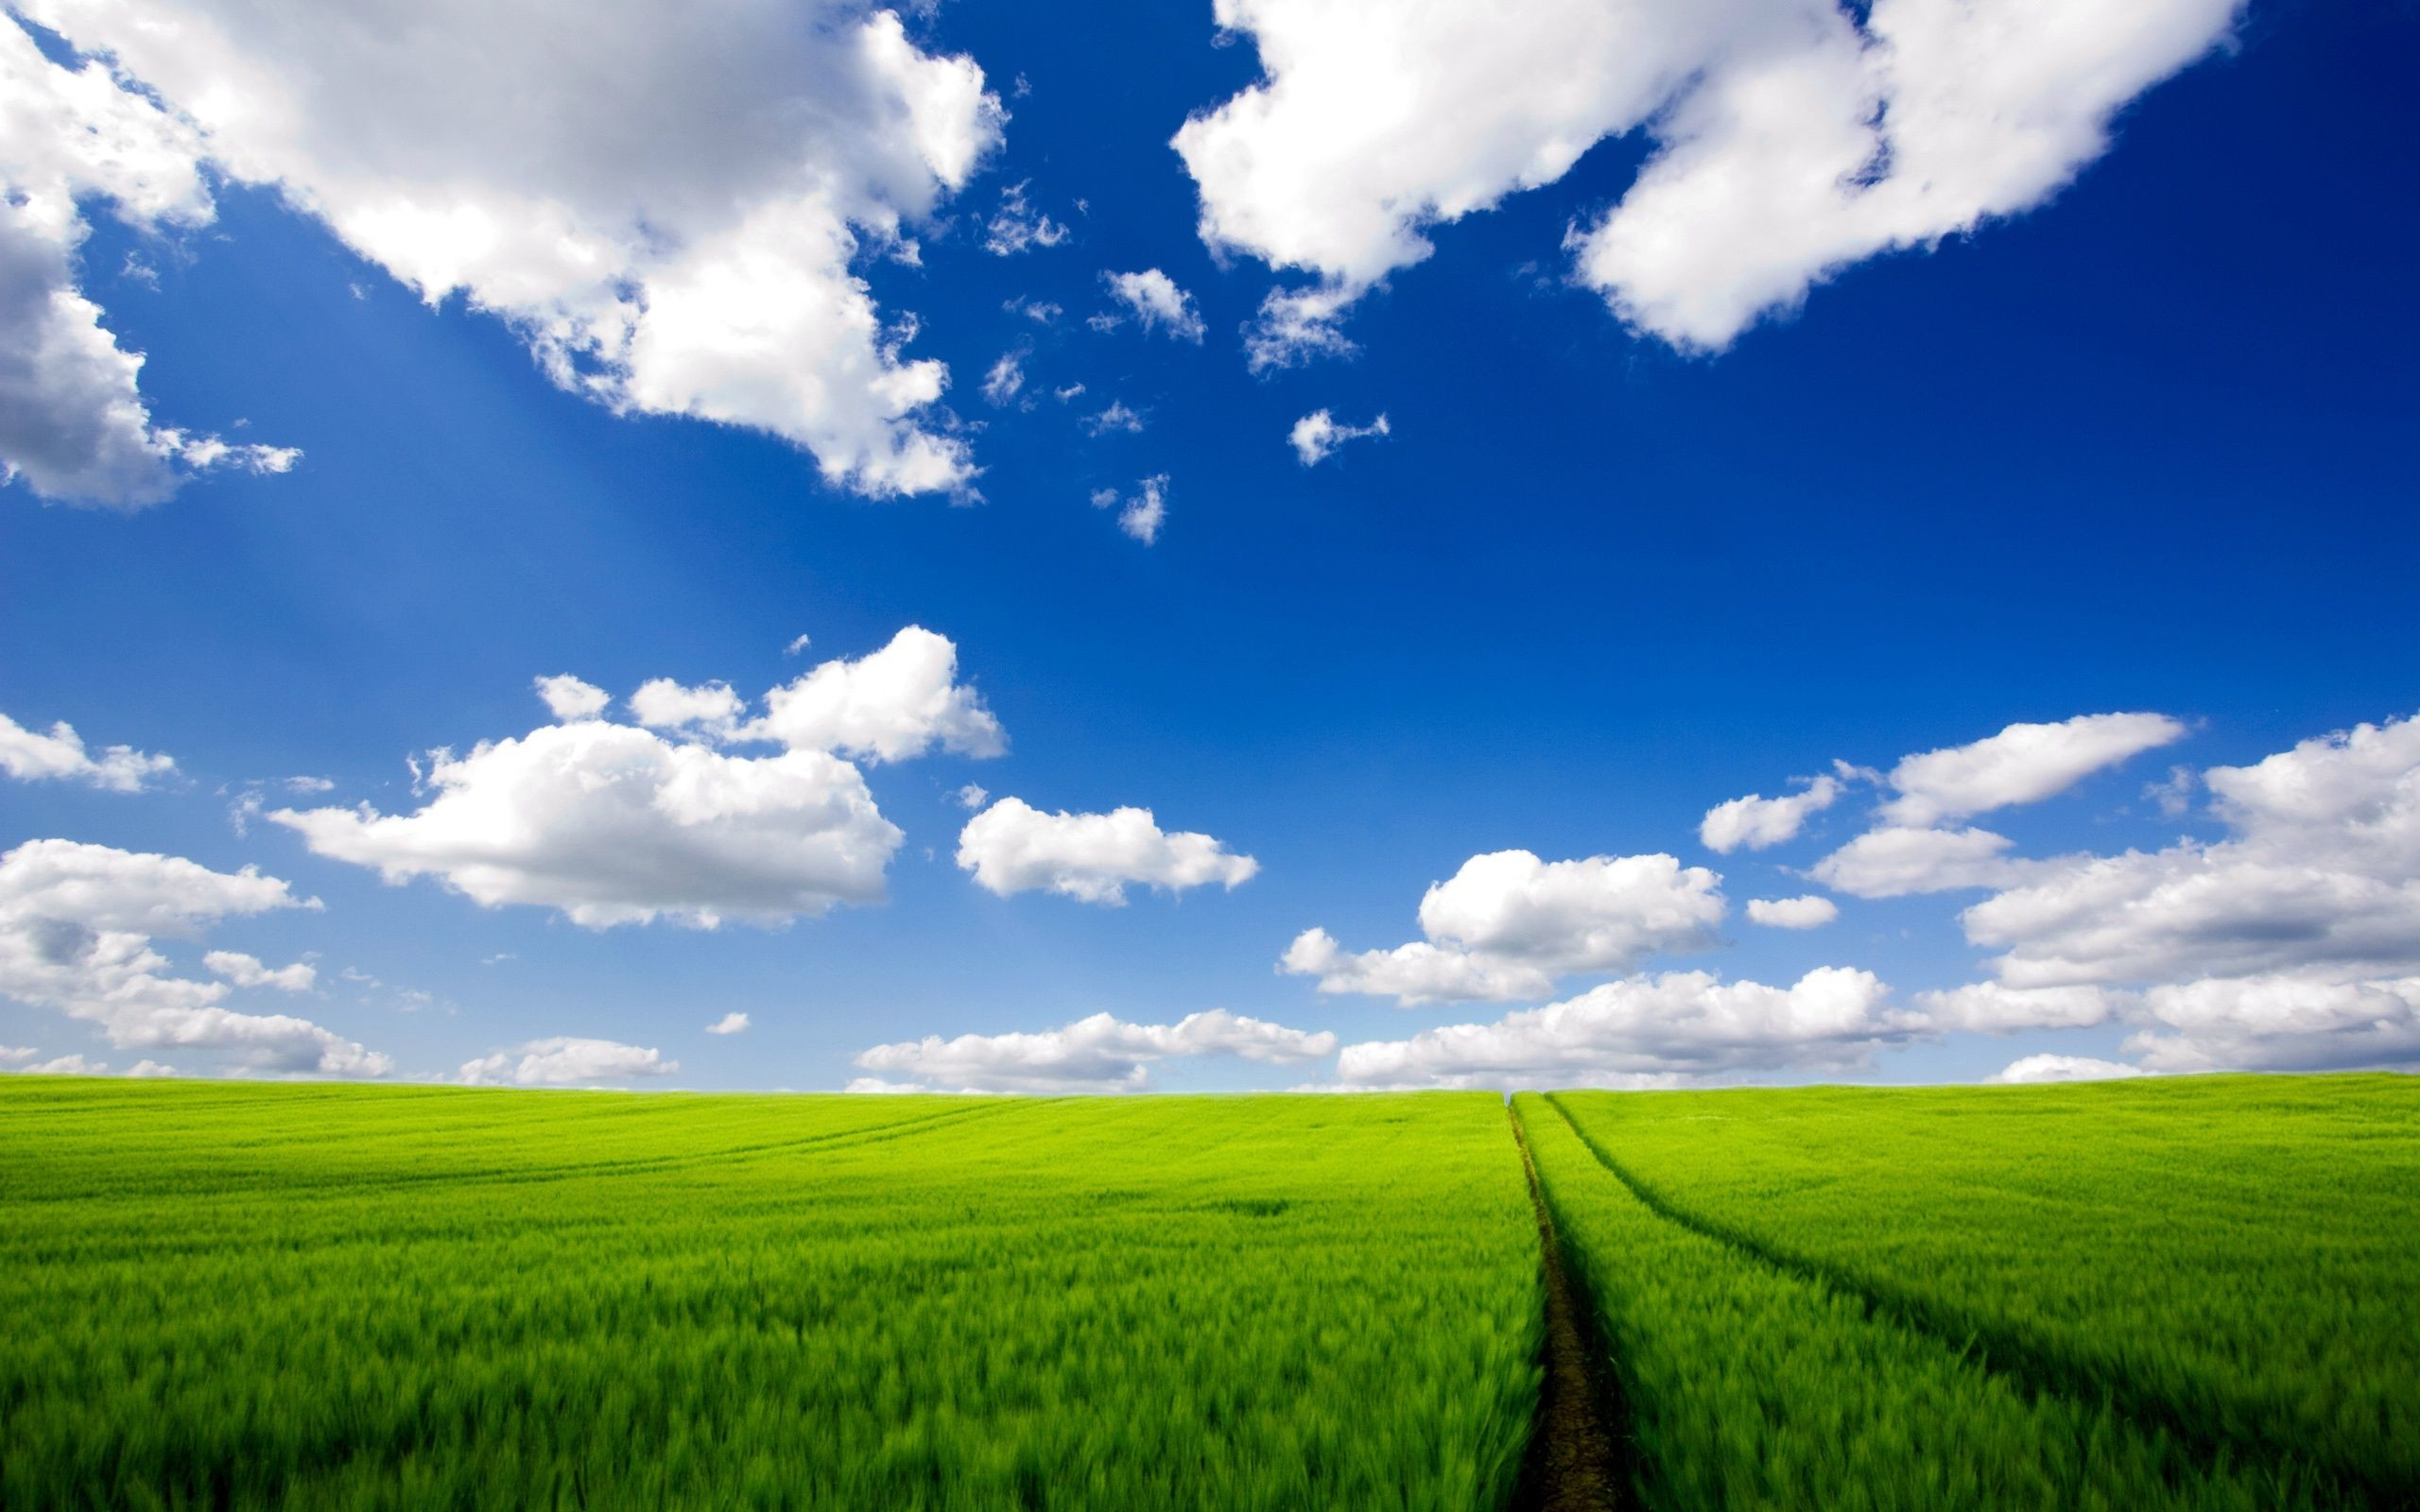 wallpaper.wiki-Cloudy-Sky-Background-for-PC-PIC-